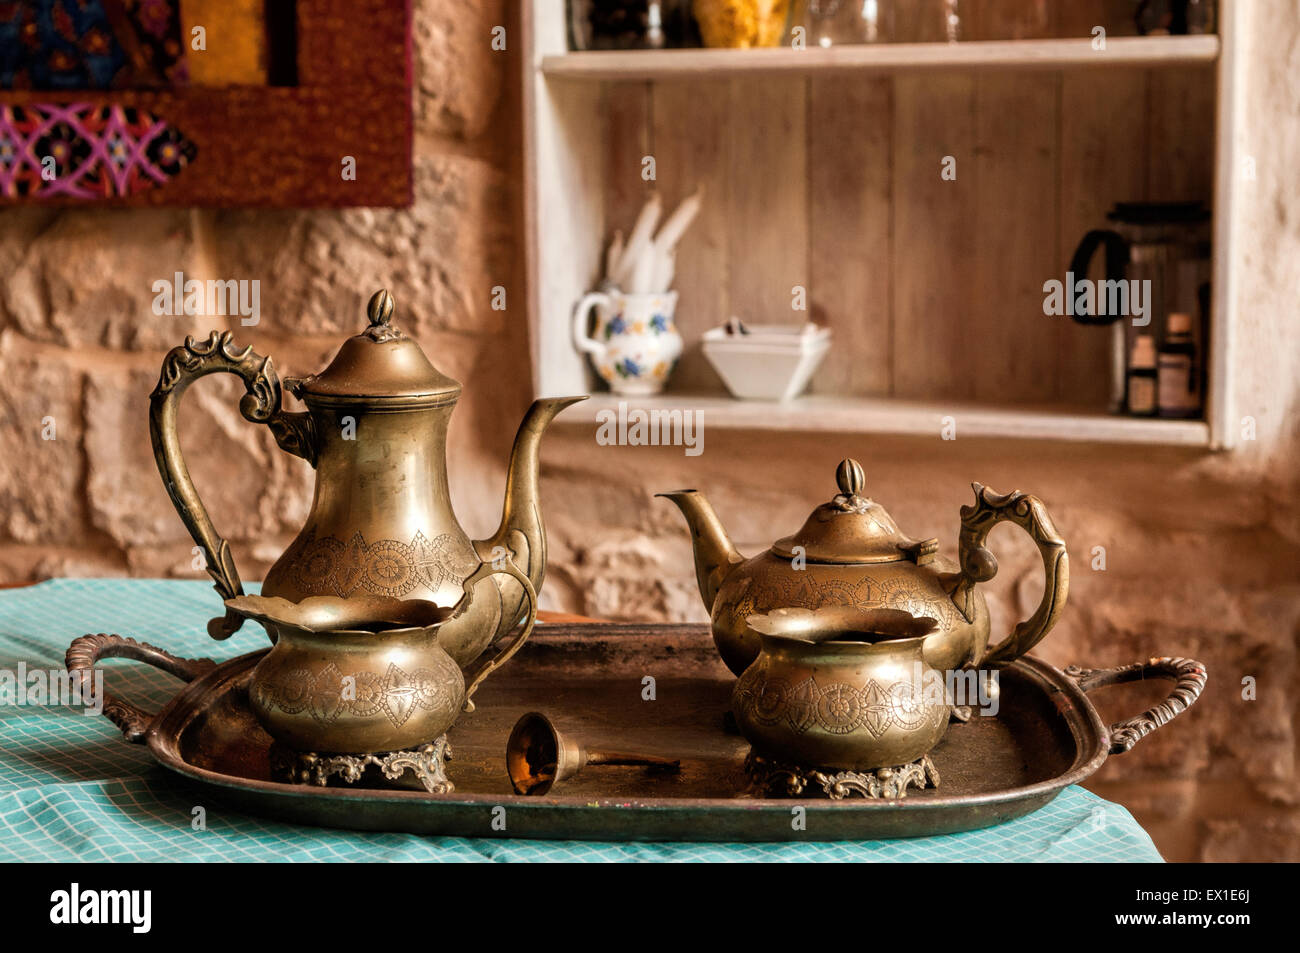 Dinner set of dishes for coffee and tea from the old bronze bell on the tray with the call for workers - Stock Image